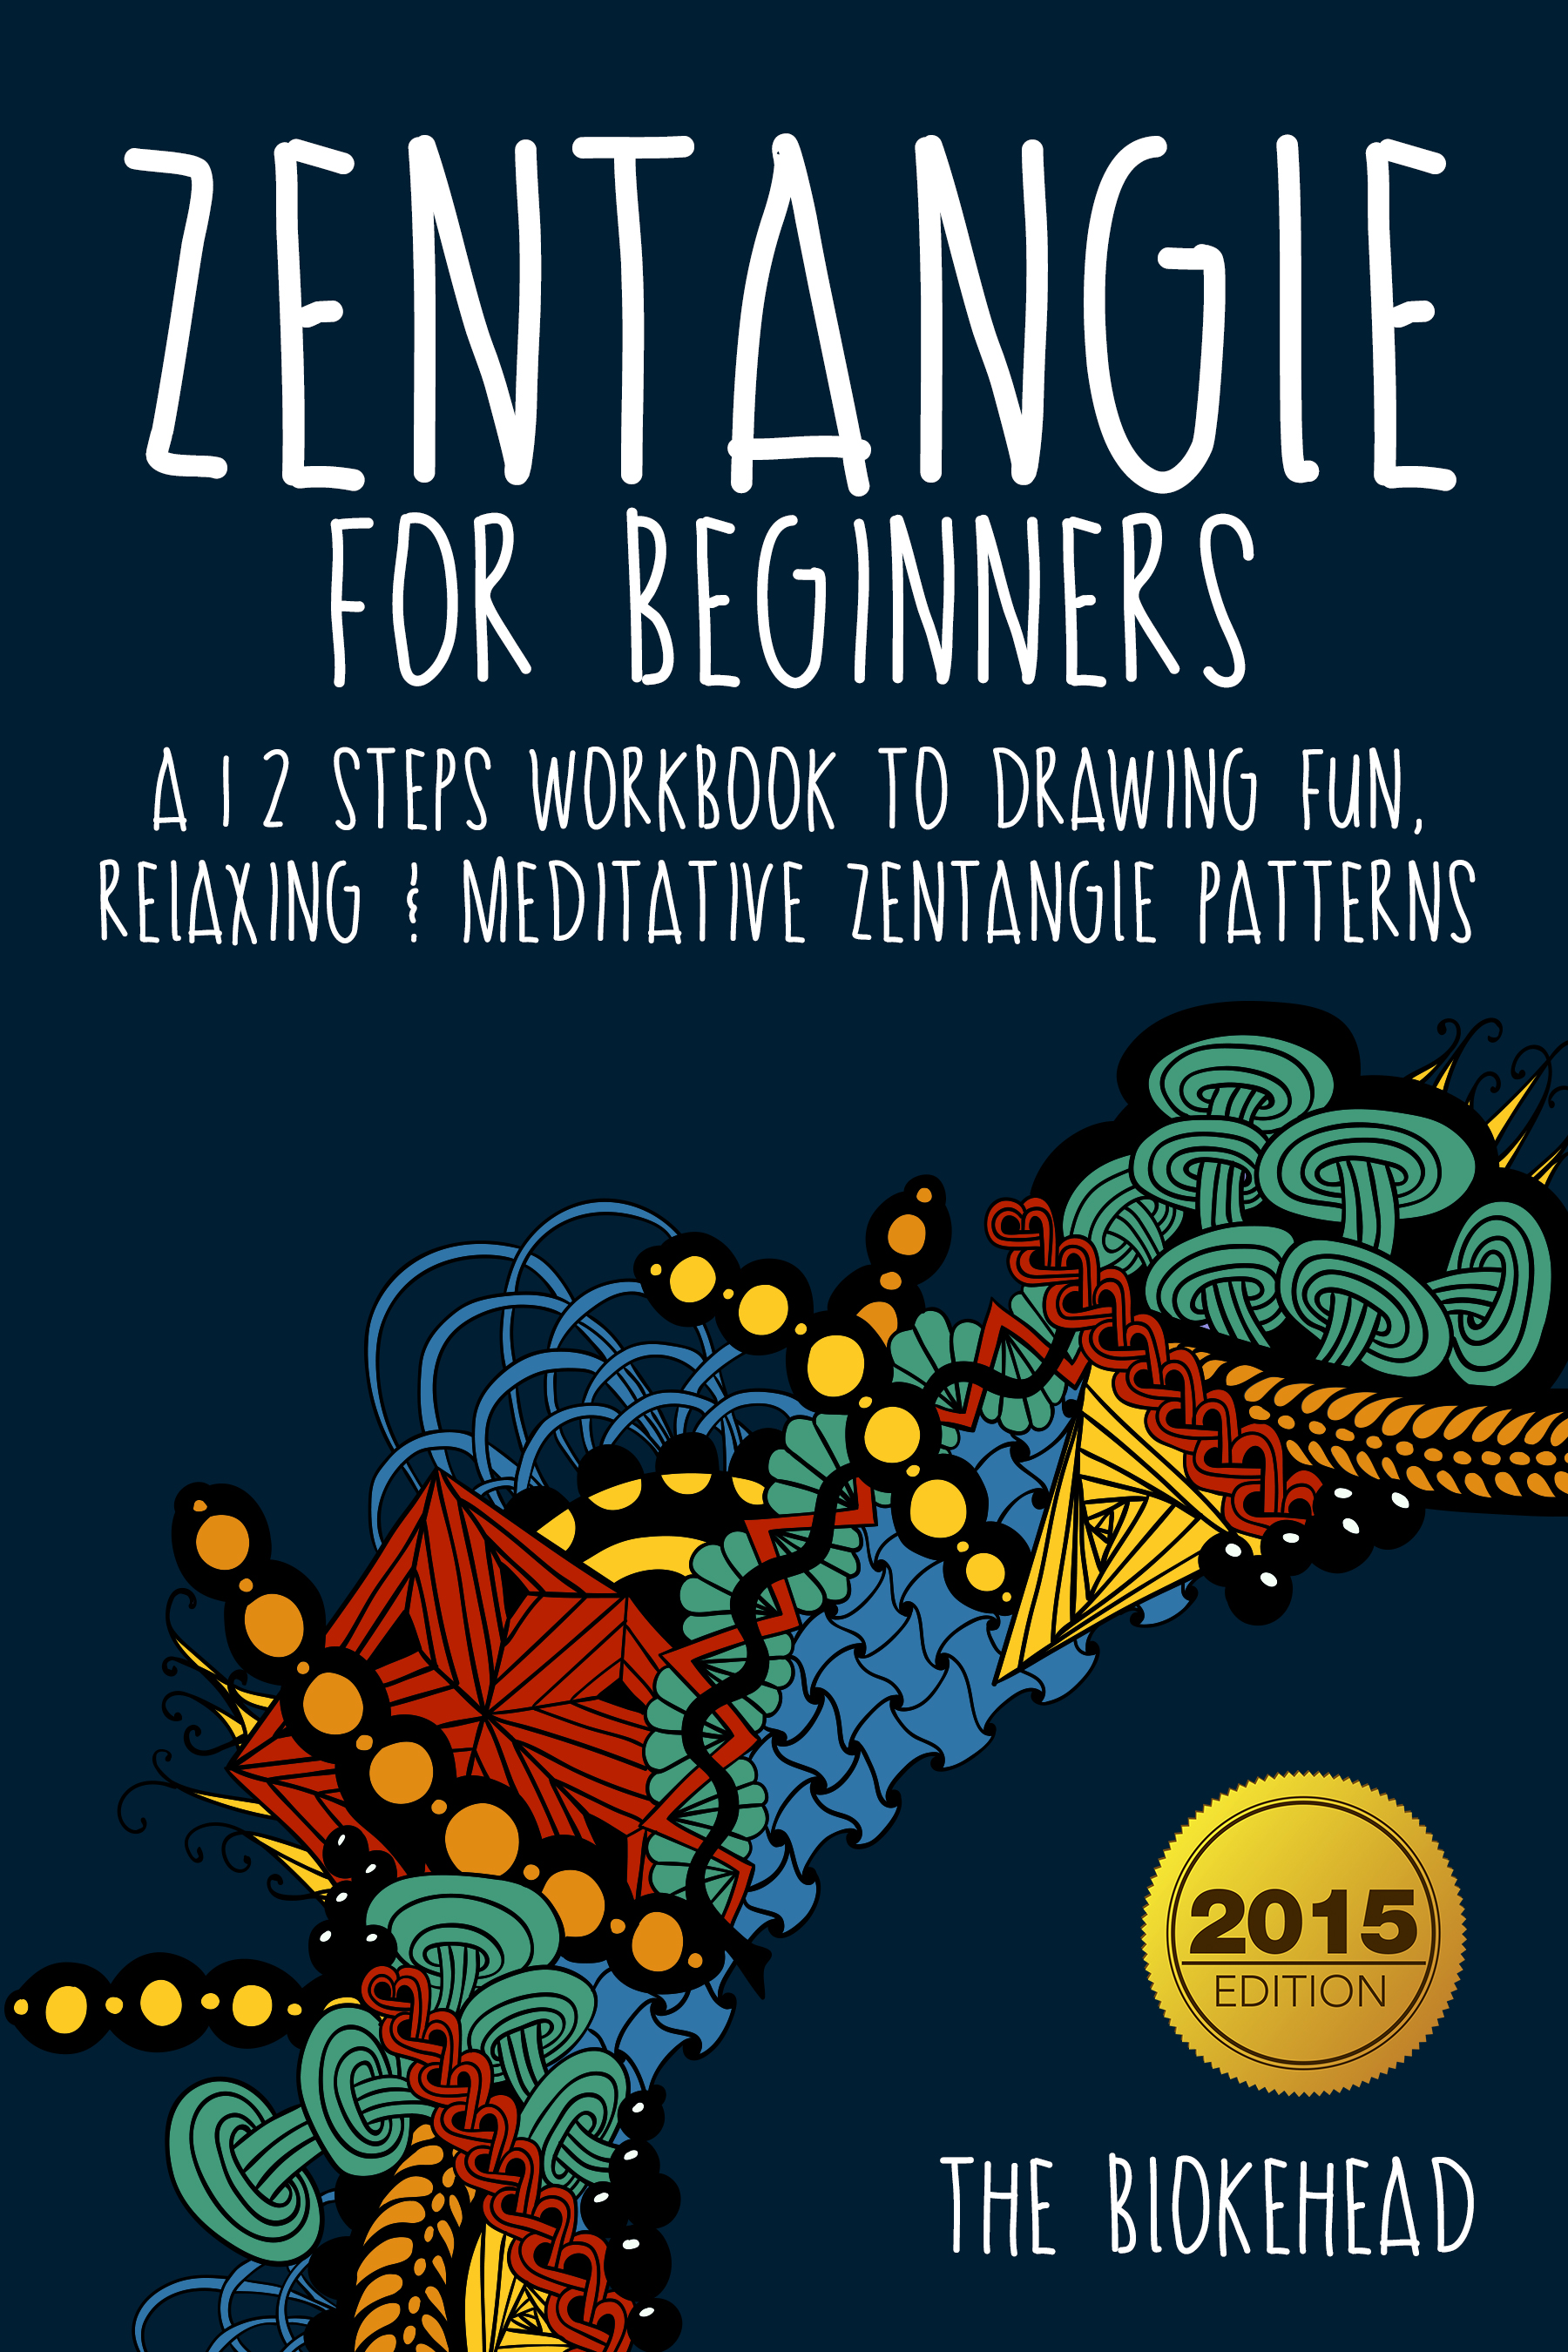 Zentangle for beginners: a 12 steps workbook to drawing relaxing & meditative zentangle patterns